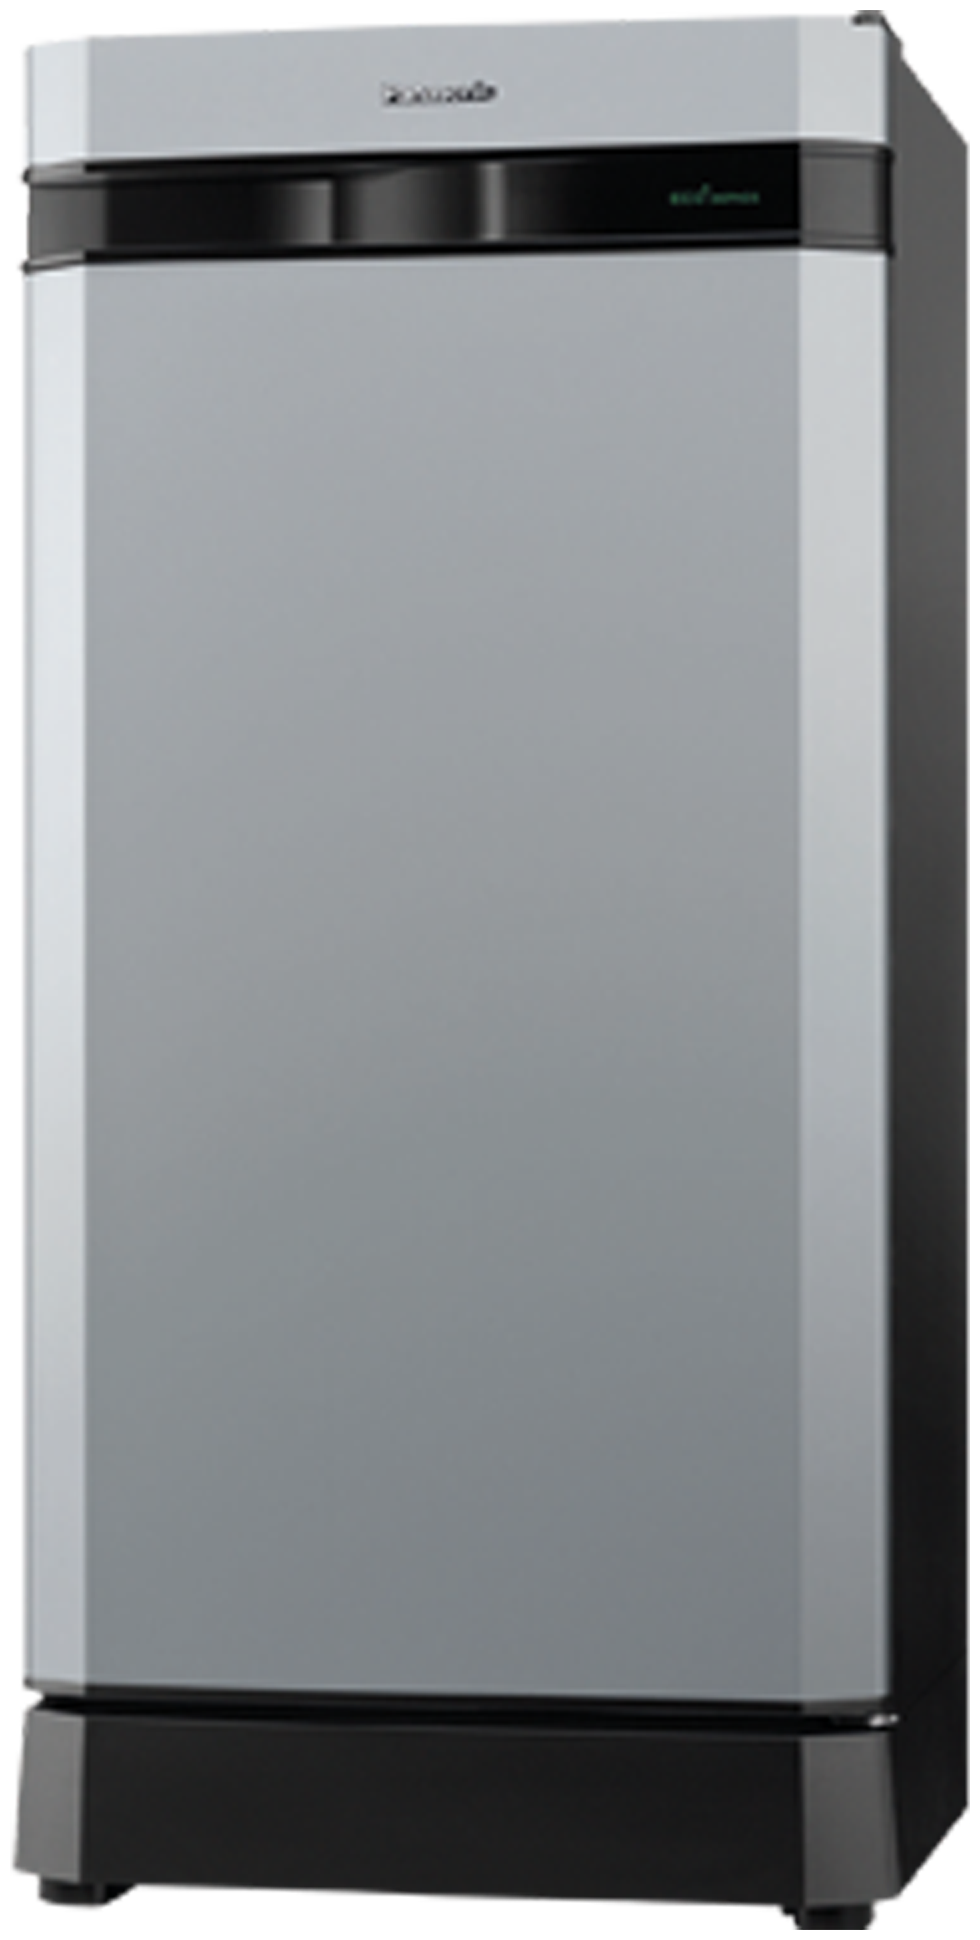 Panasonic 190 L Direct Cool Single Door Refrigerator (NRAH195RHX, Silver)